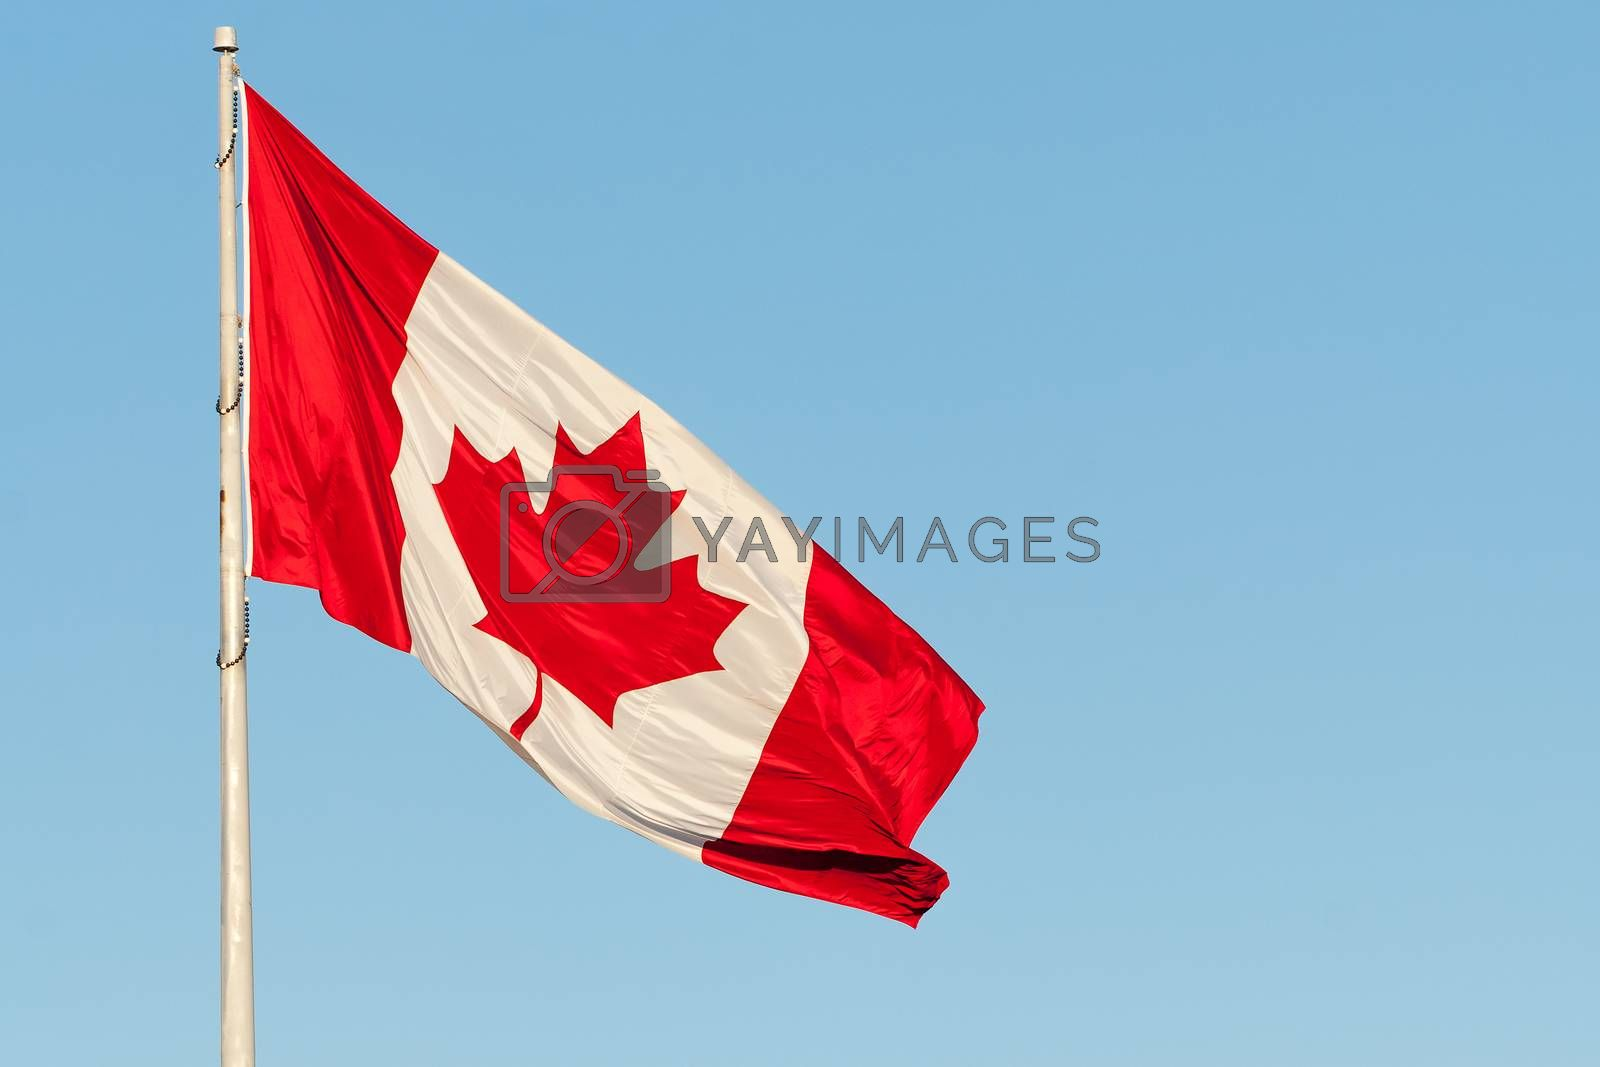 The Canadian flag waves in a breeze against a clear blue sky.